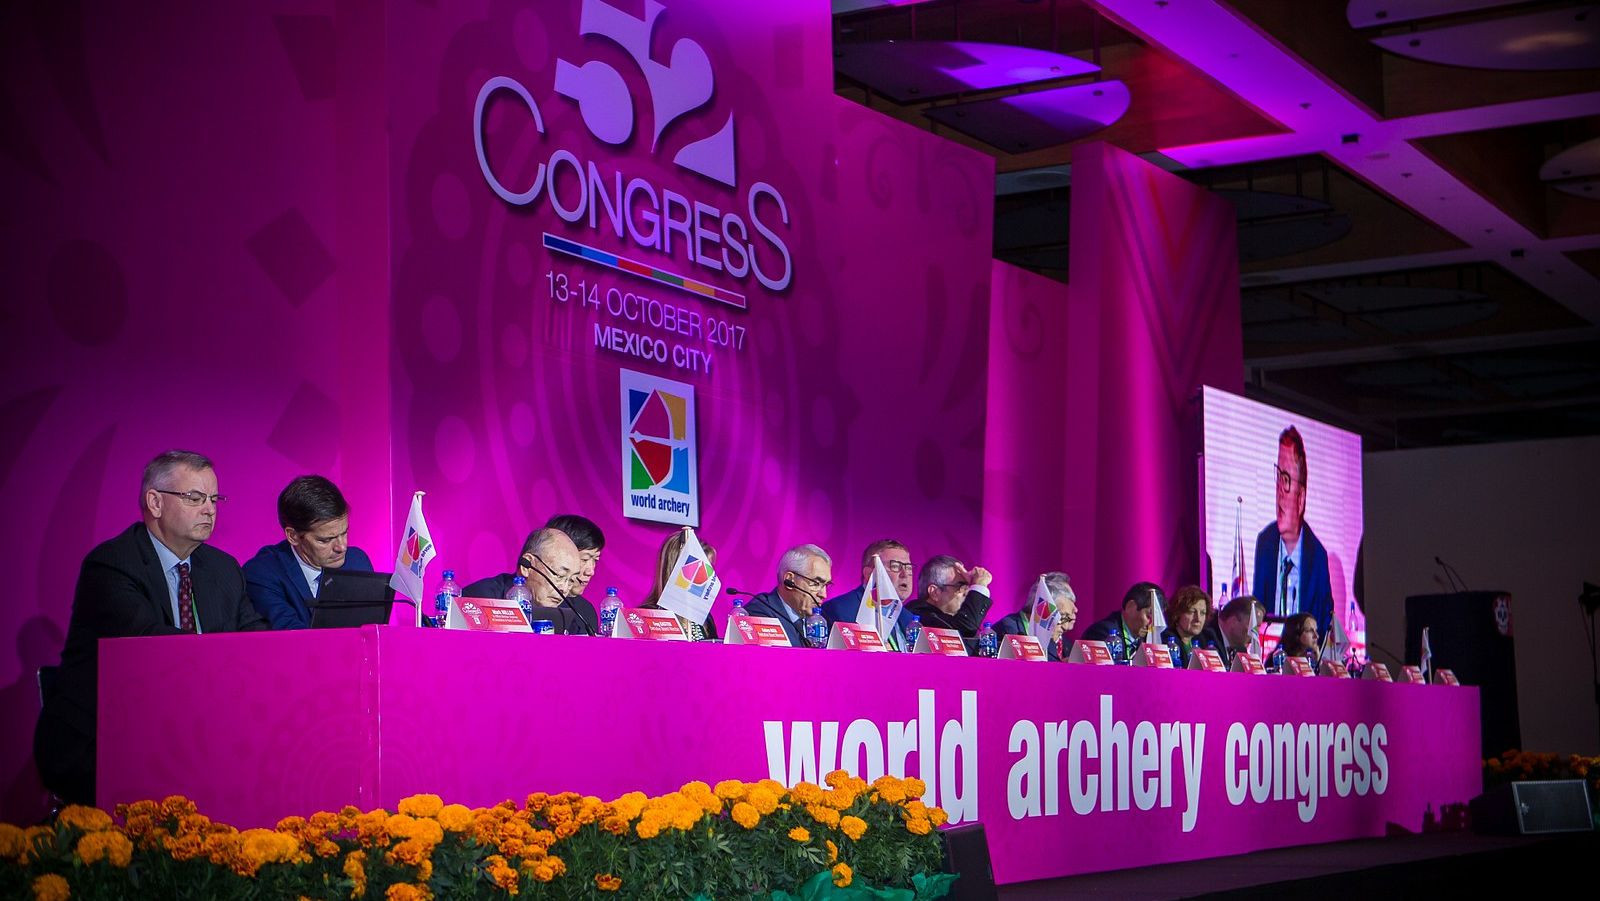 Three members excluded for non-payment of fees at World Archery Congress